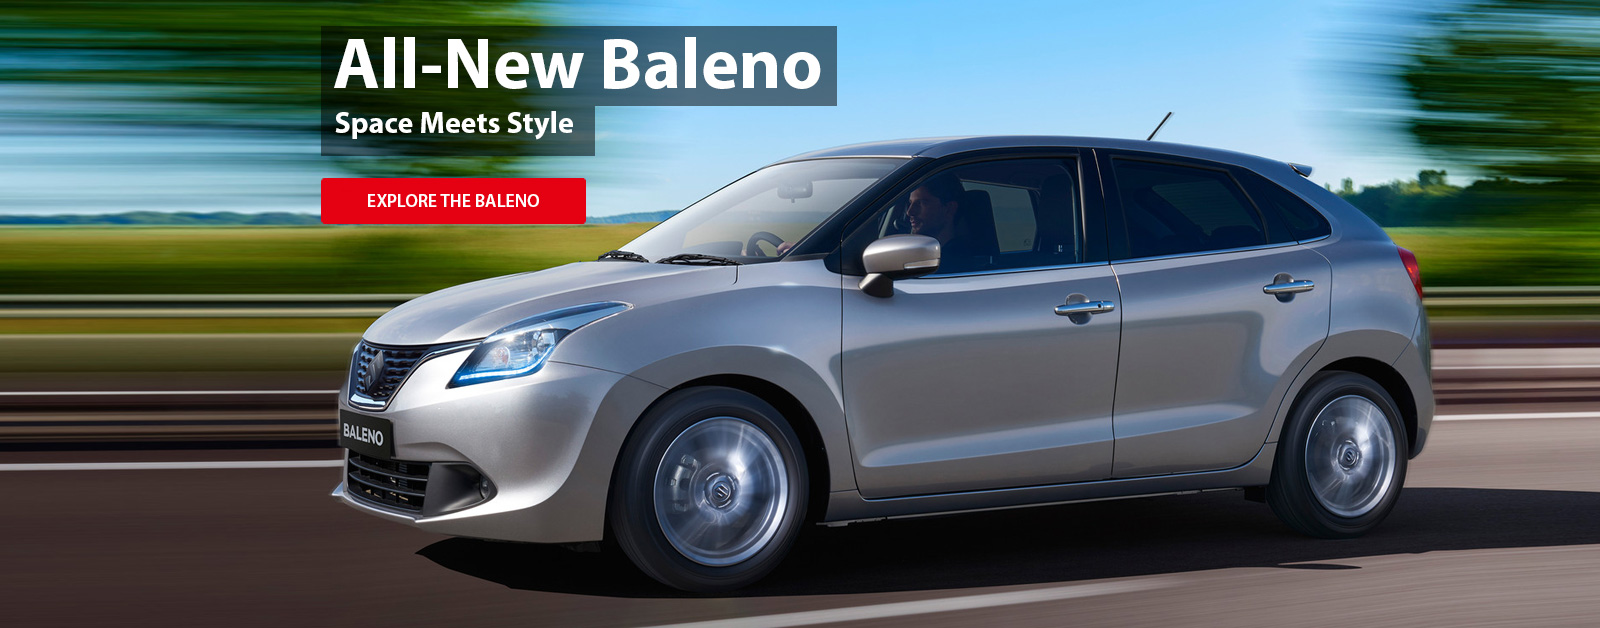 The all new Baleno, space meets style at Nundah Suzuki, your number 1 Suzuki dealer in Brisbane.